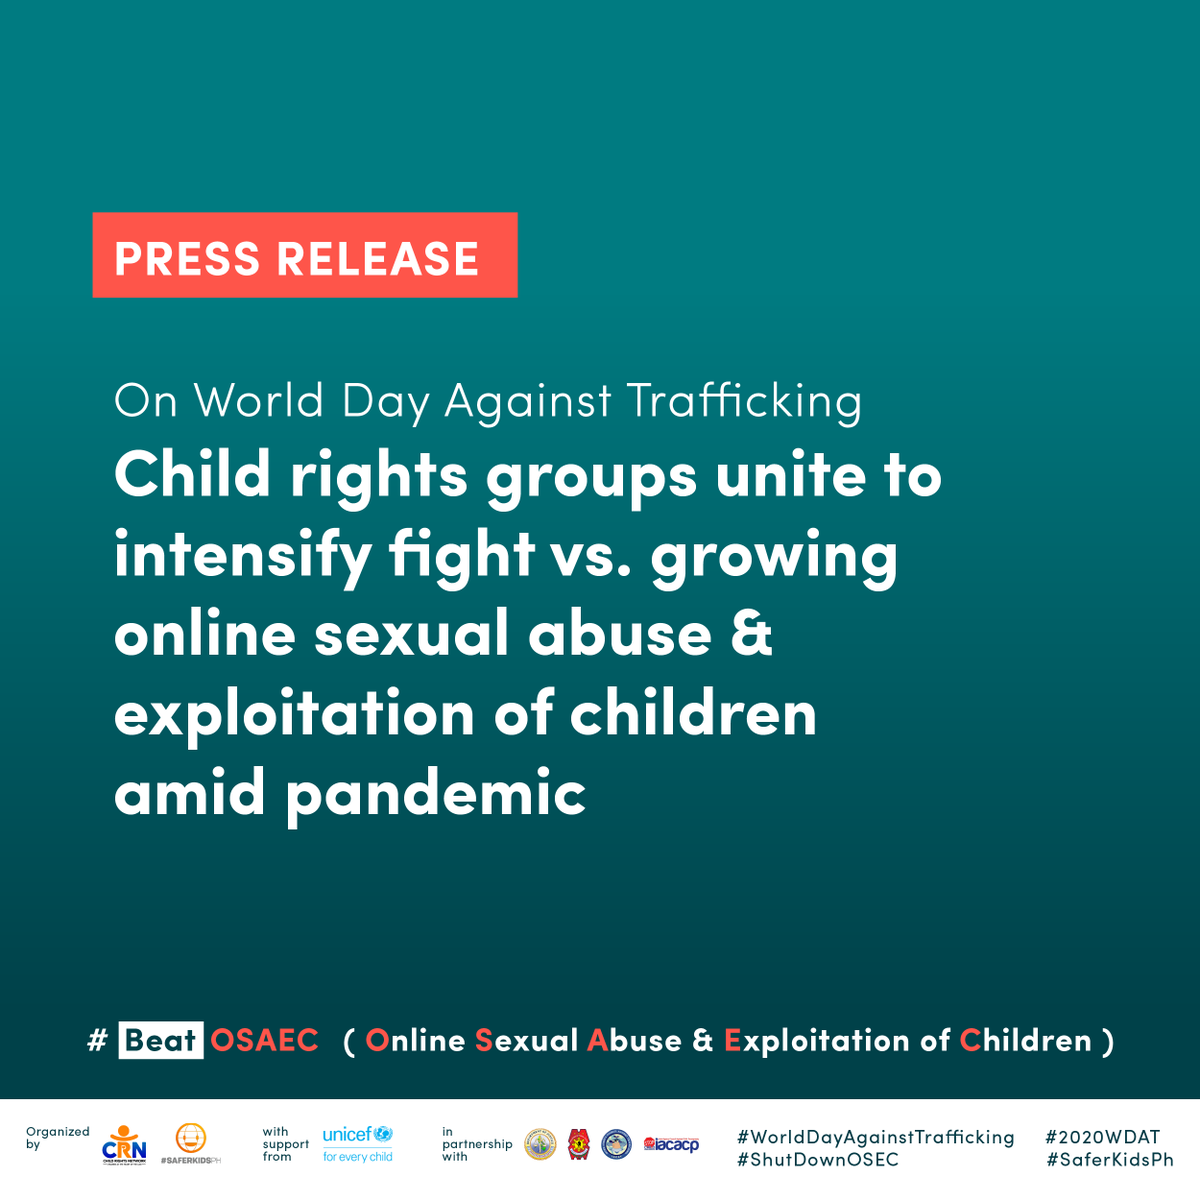 PRESS RELEASE: Child rights groups unite to intensify fight vs. growing online sexual abuse & exploitation of children amid pandemic #WorldDayAgainstTrafficking #BeatOSAEC  Read full statement here: